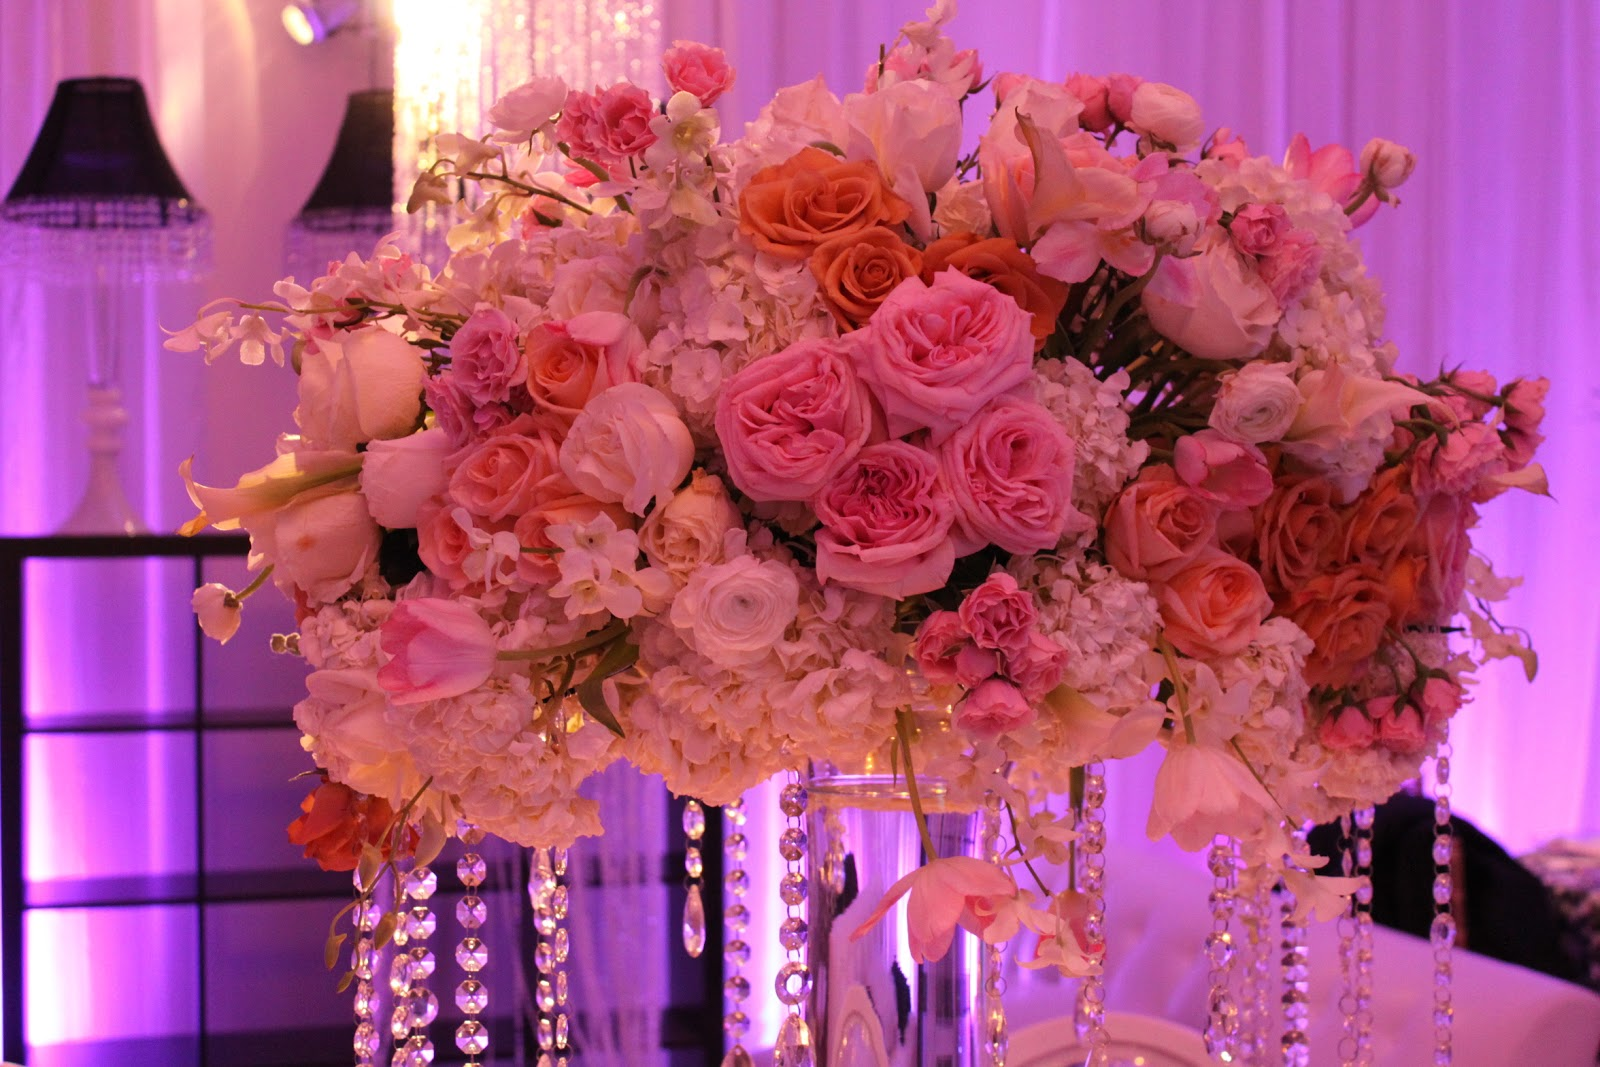 Weddings florist washington dc davinciflorist